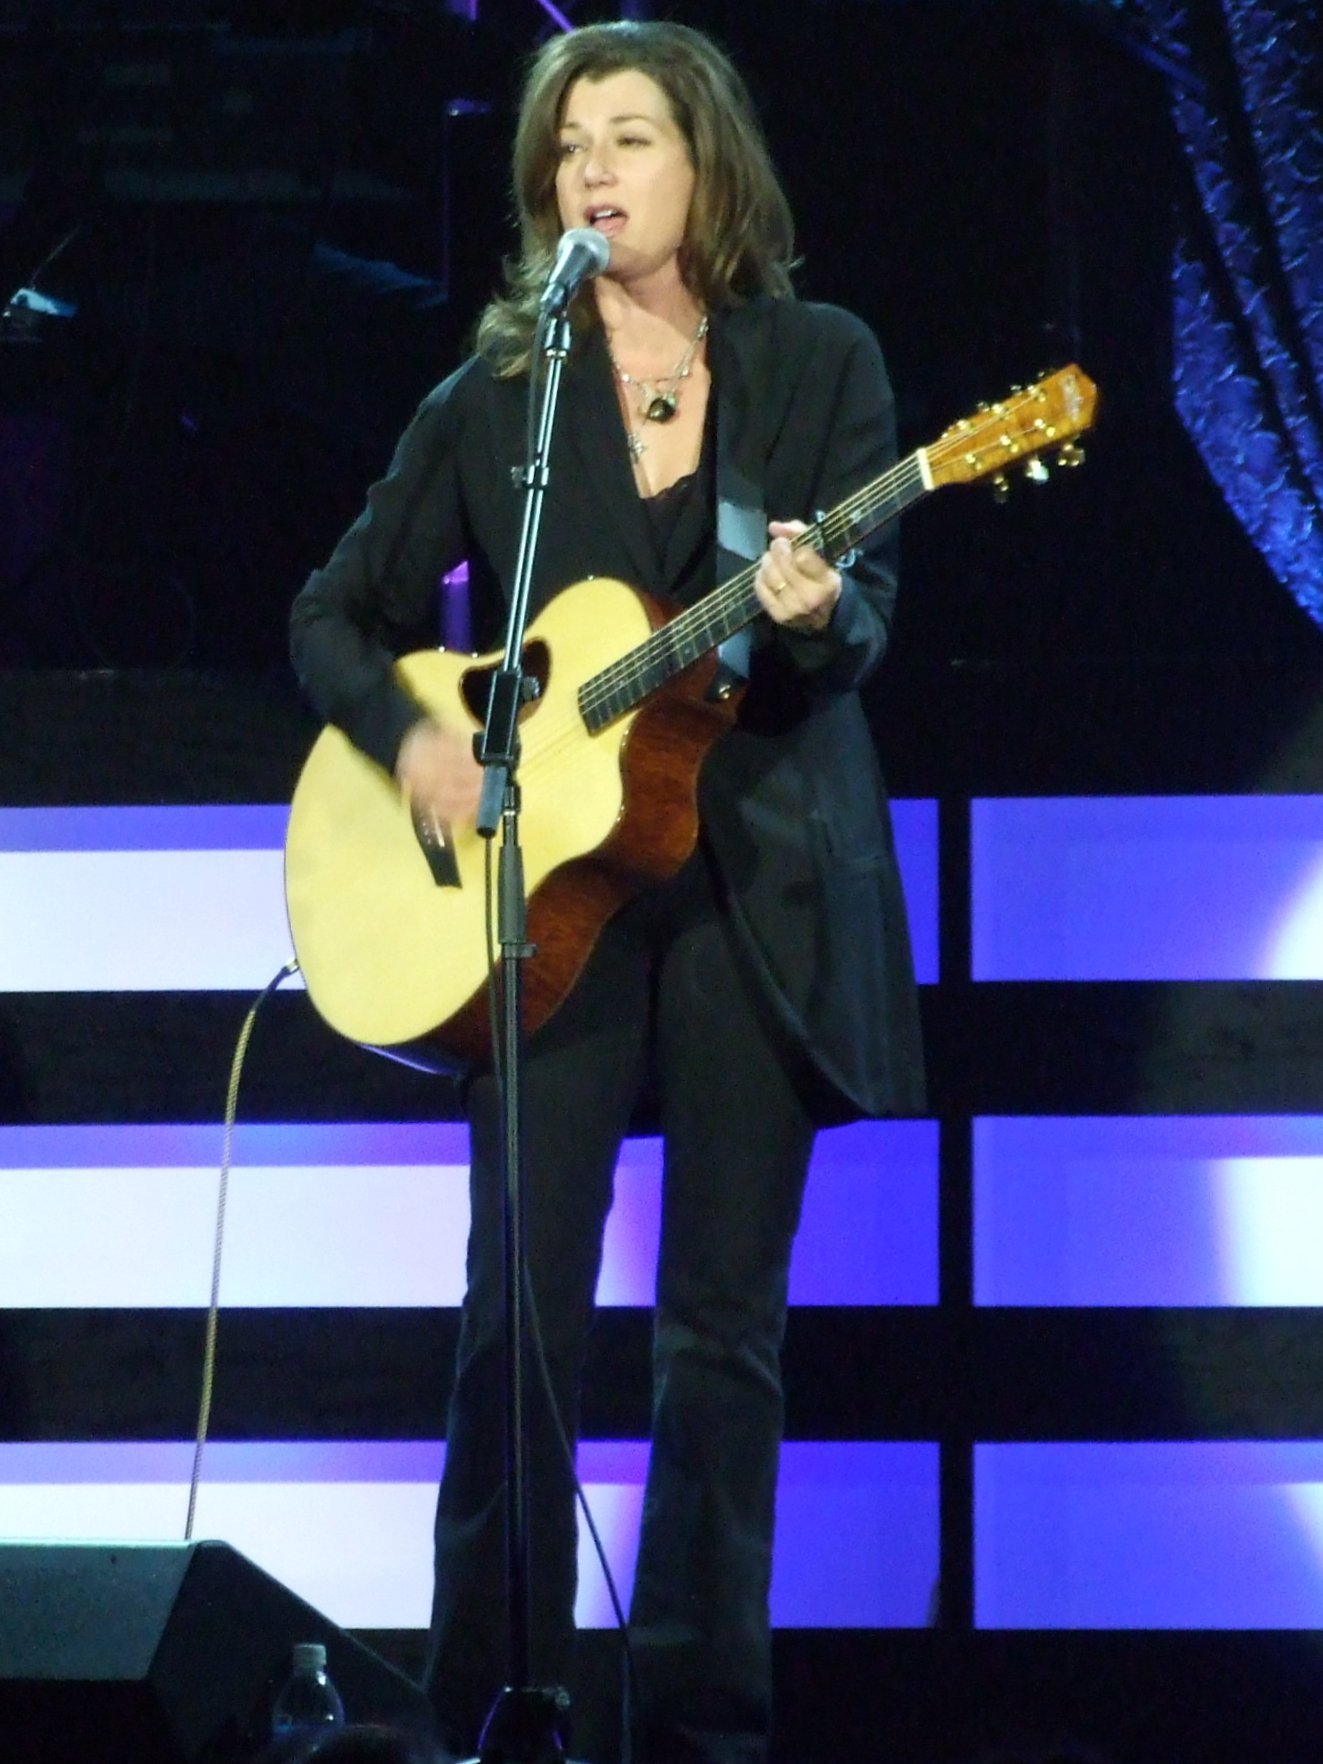 Amy Grant discography - Wikipedia